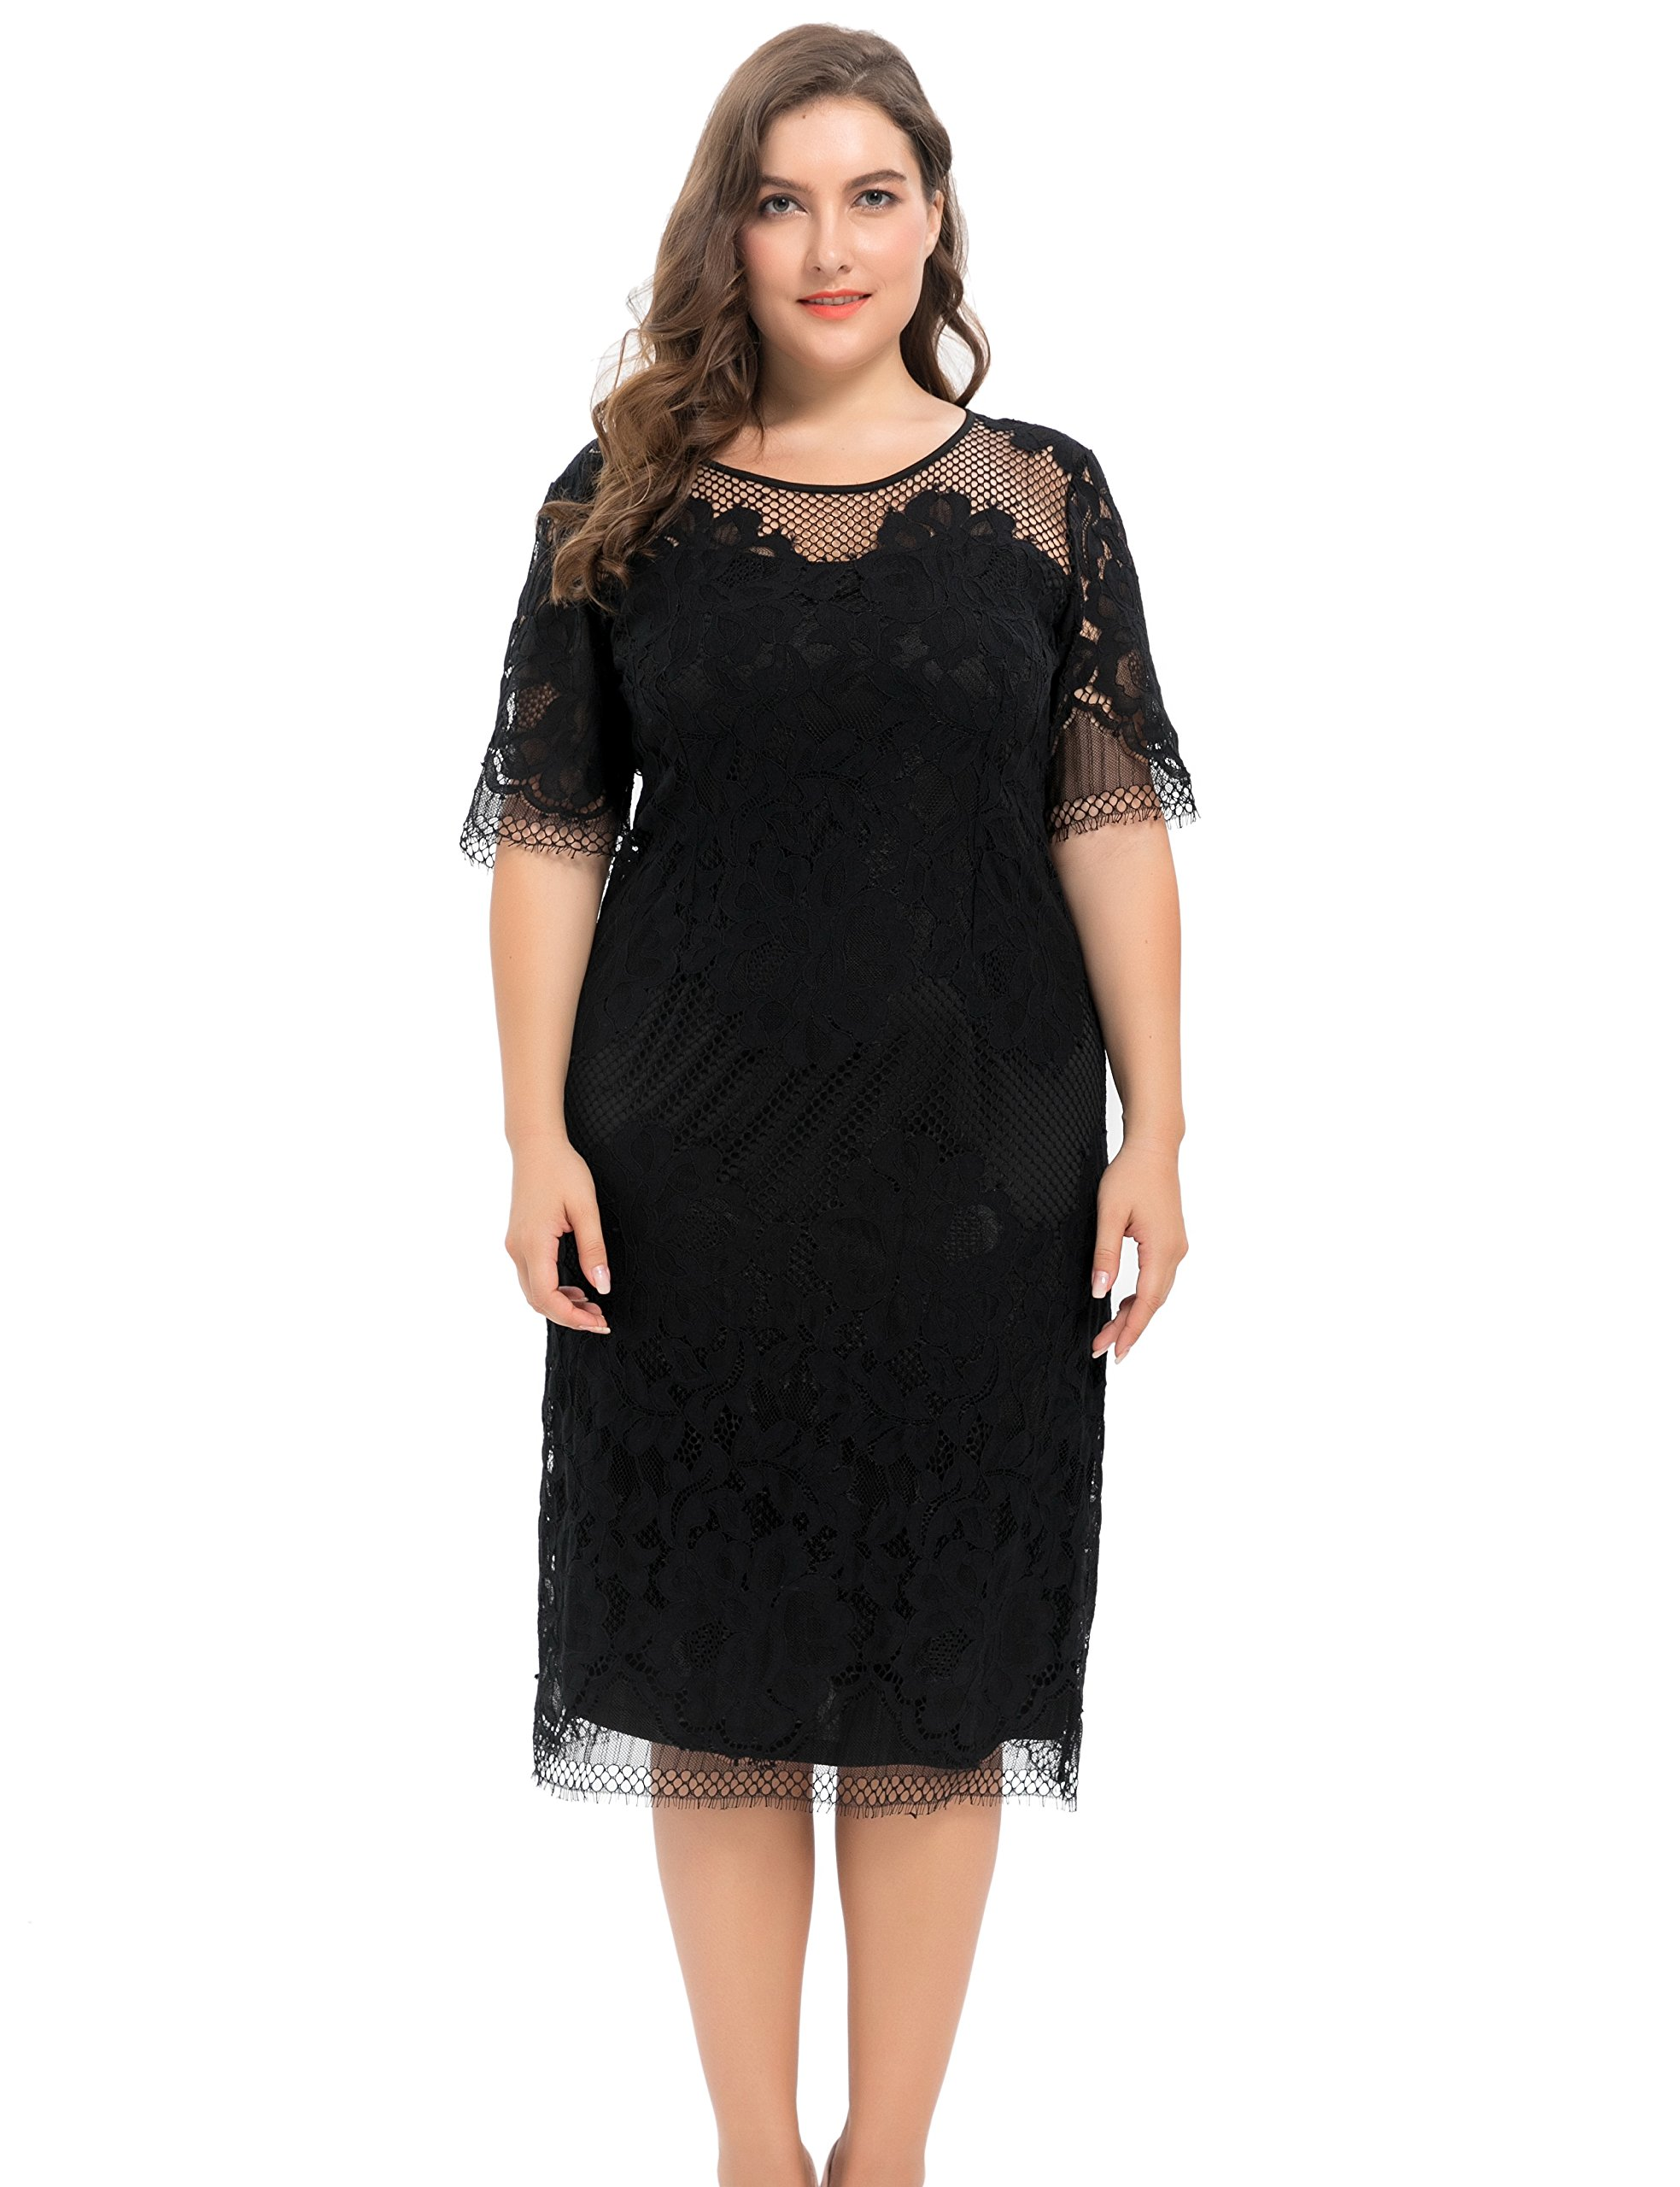 Chicwe Women's Plus Size Lined Floral Lace Dress - Knee Length Casual Party Cocktail Dress 1X